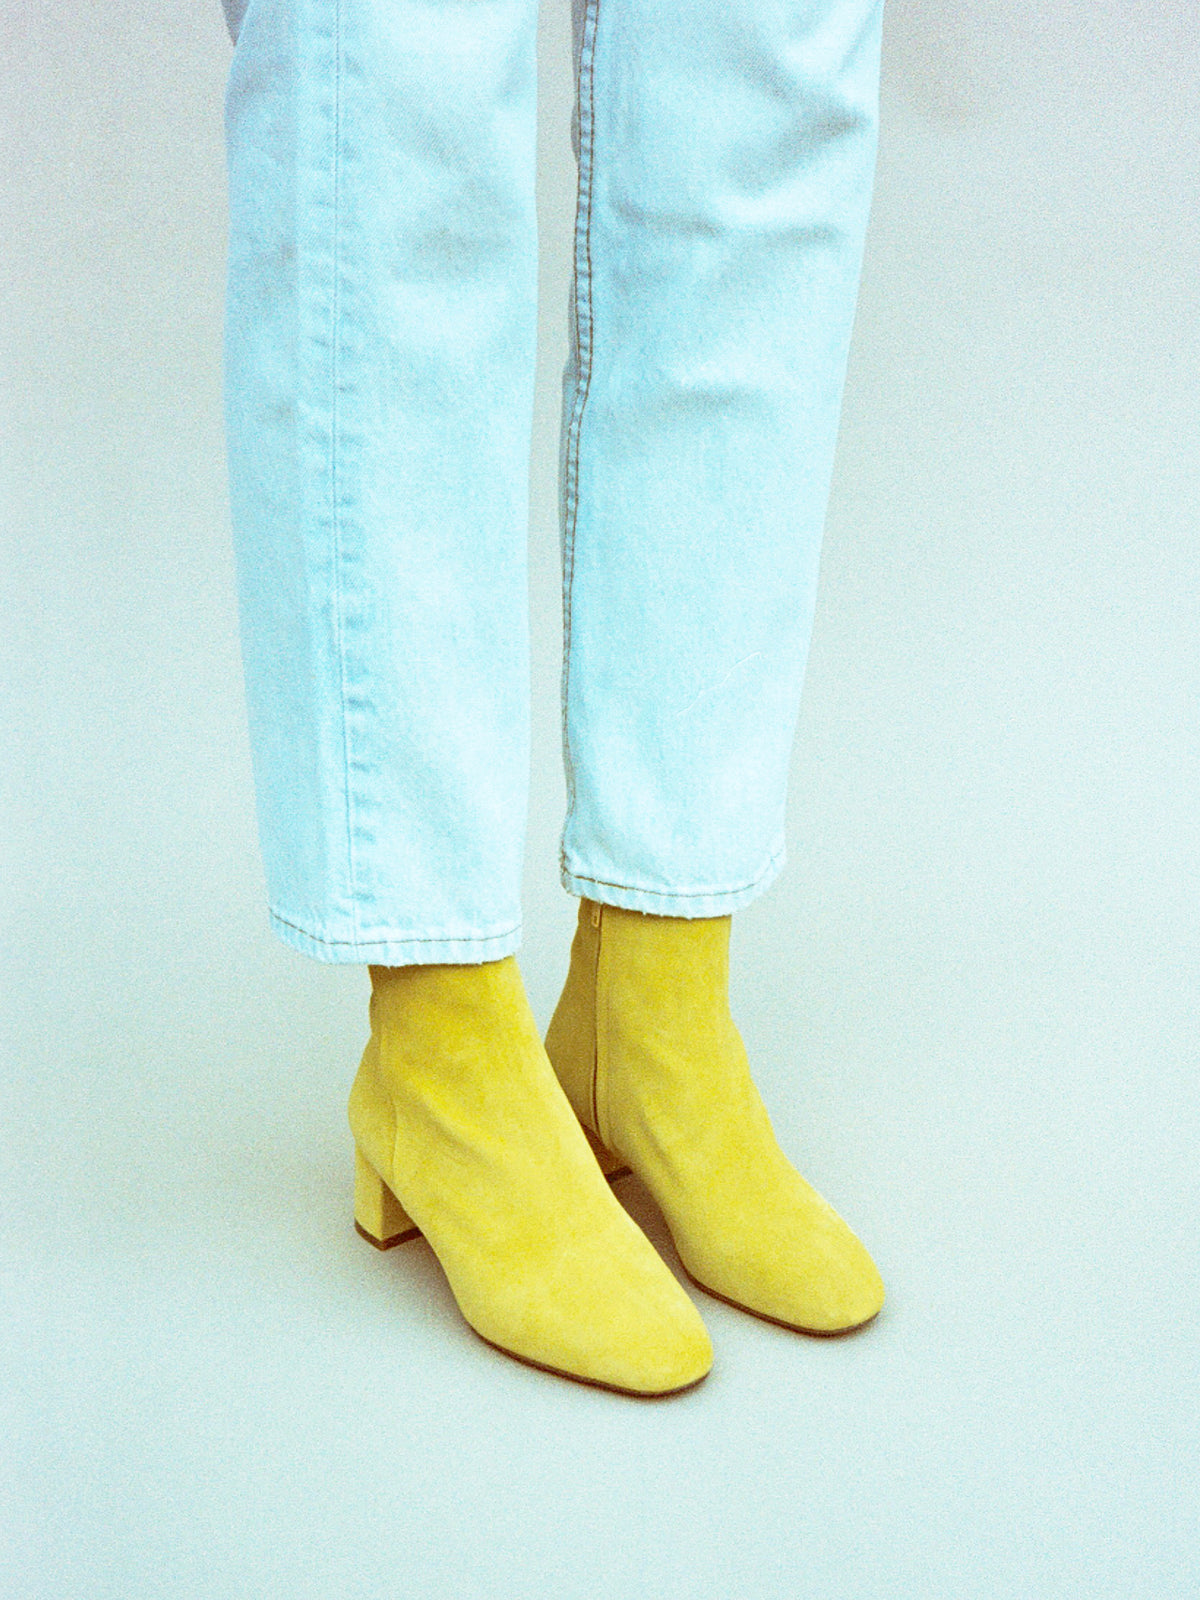 ANKLE BOOT, YELLOW